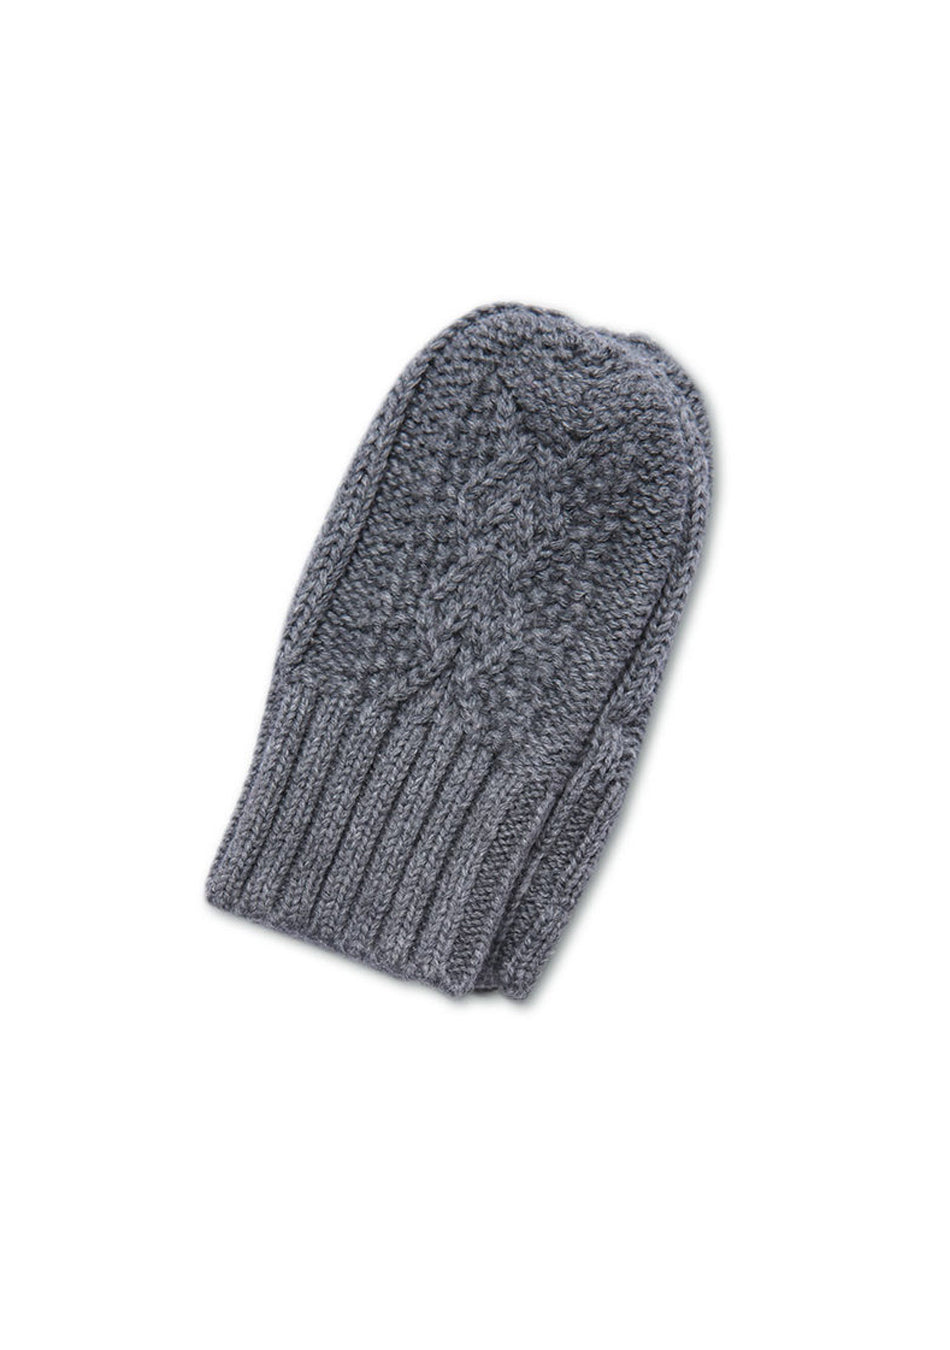 Dark Gray Cable Mittens